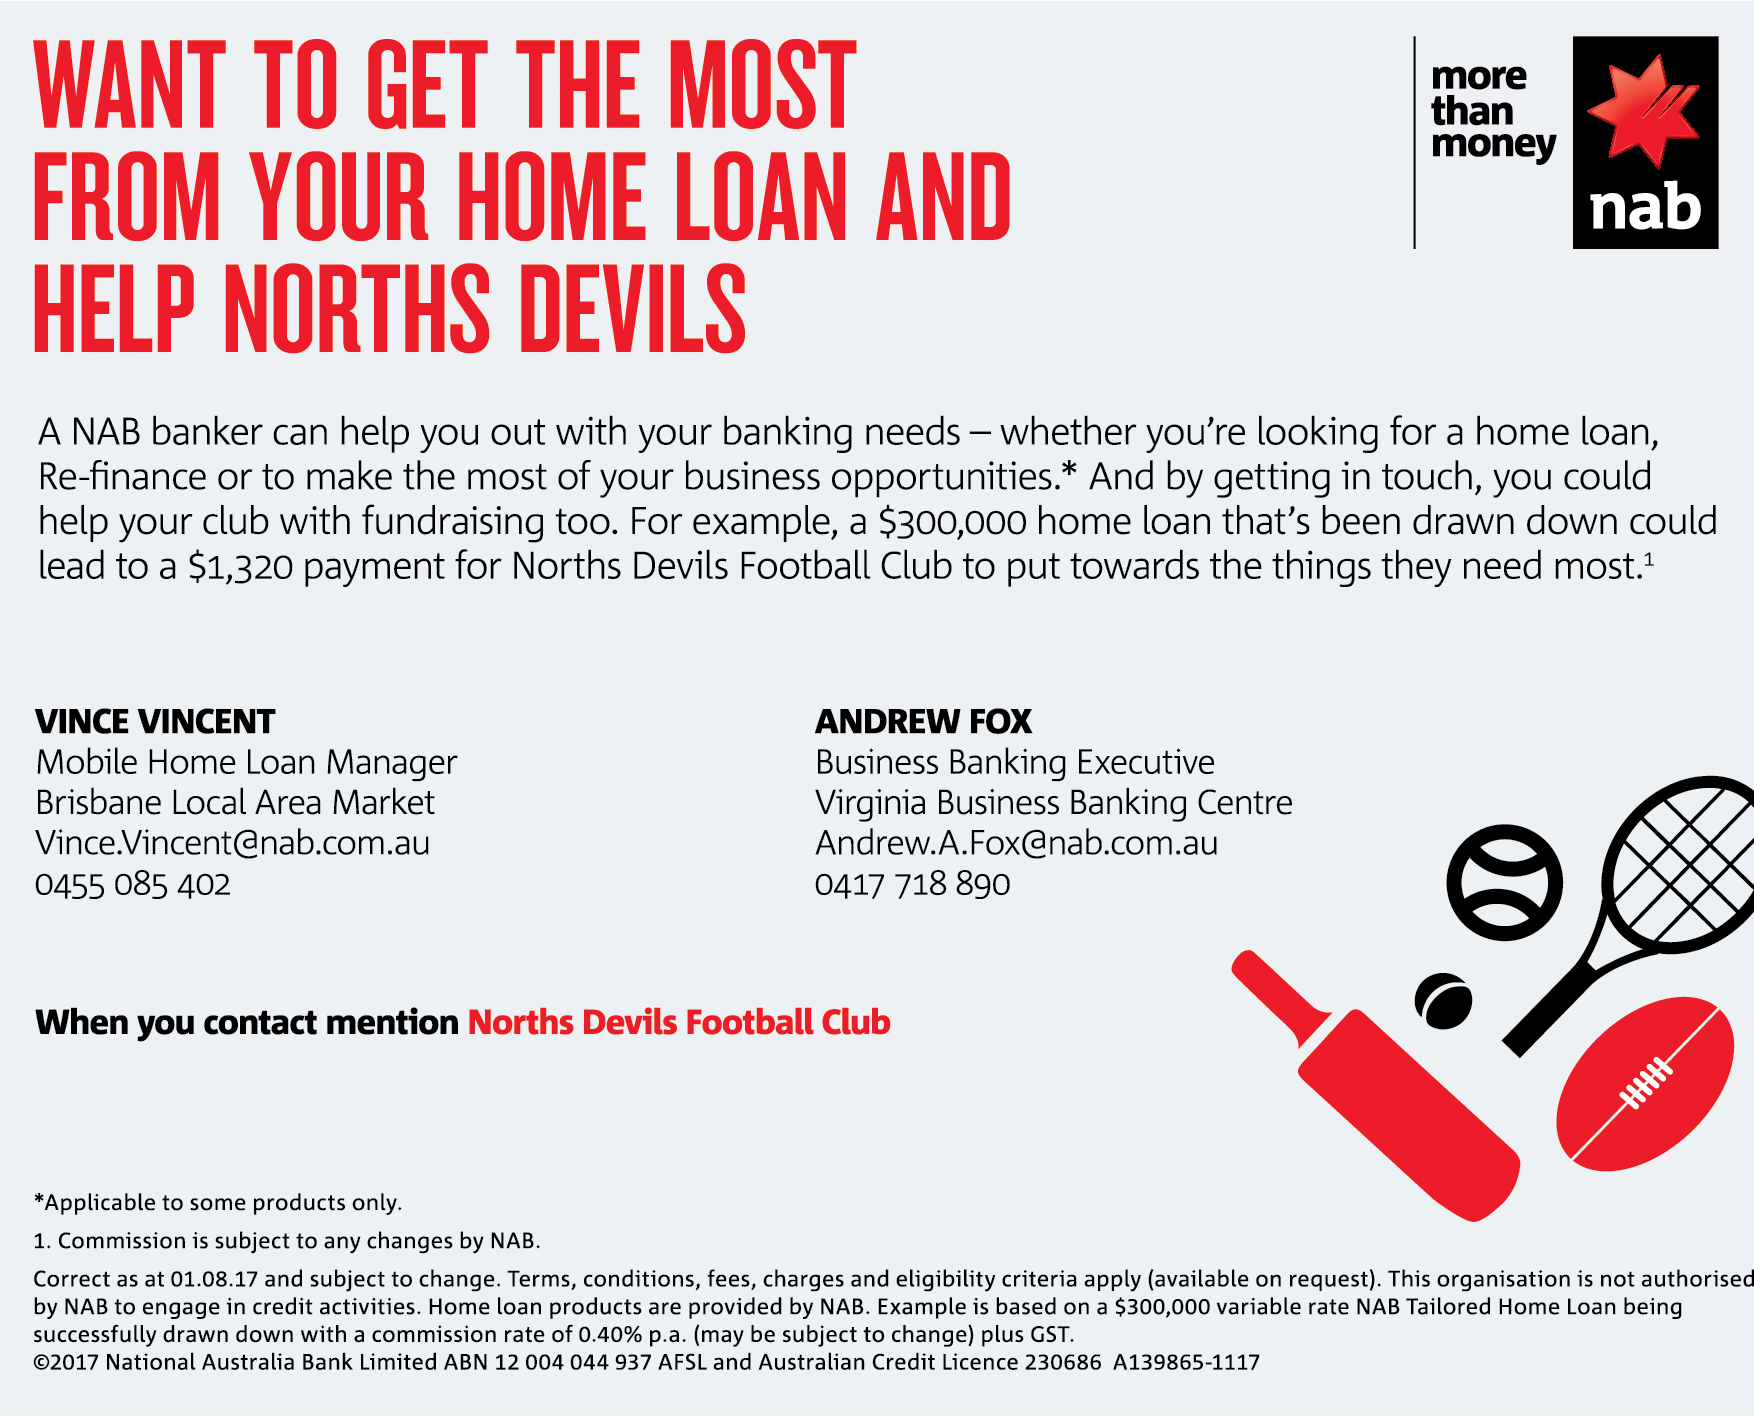 NAB Norths Devils Promotion